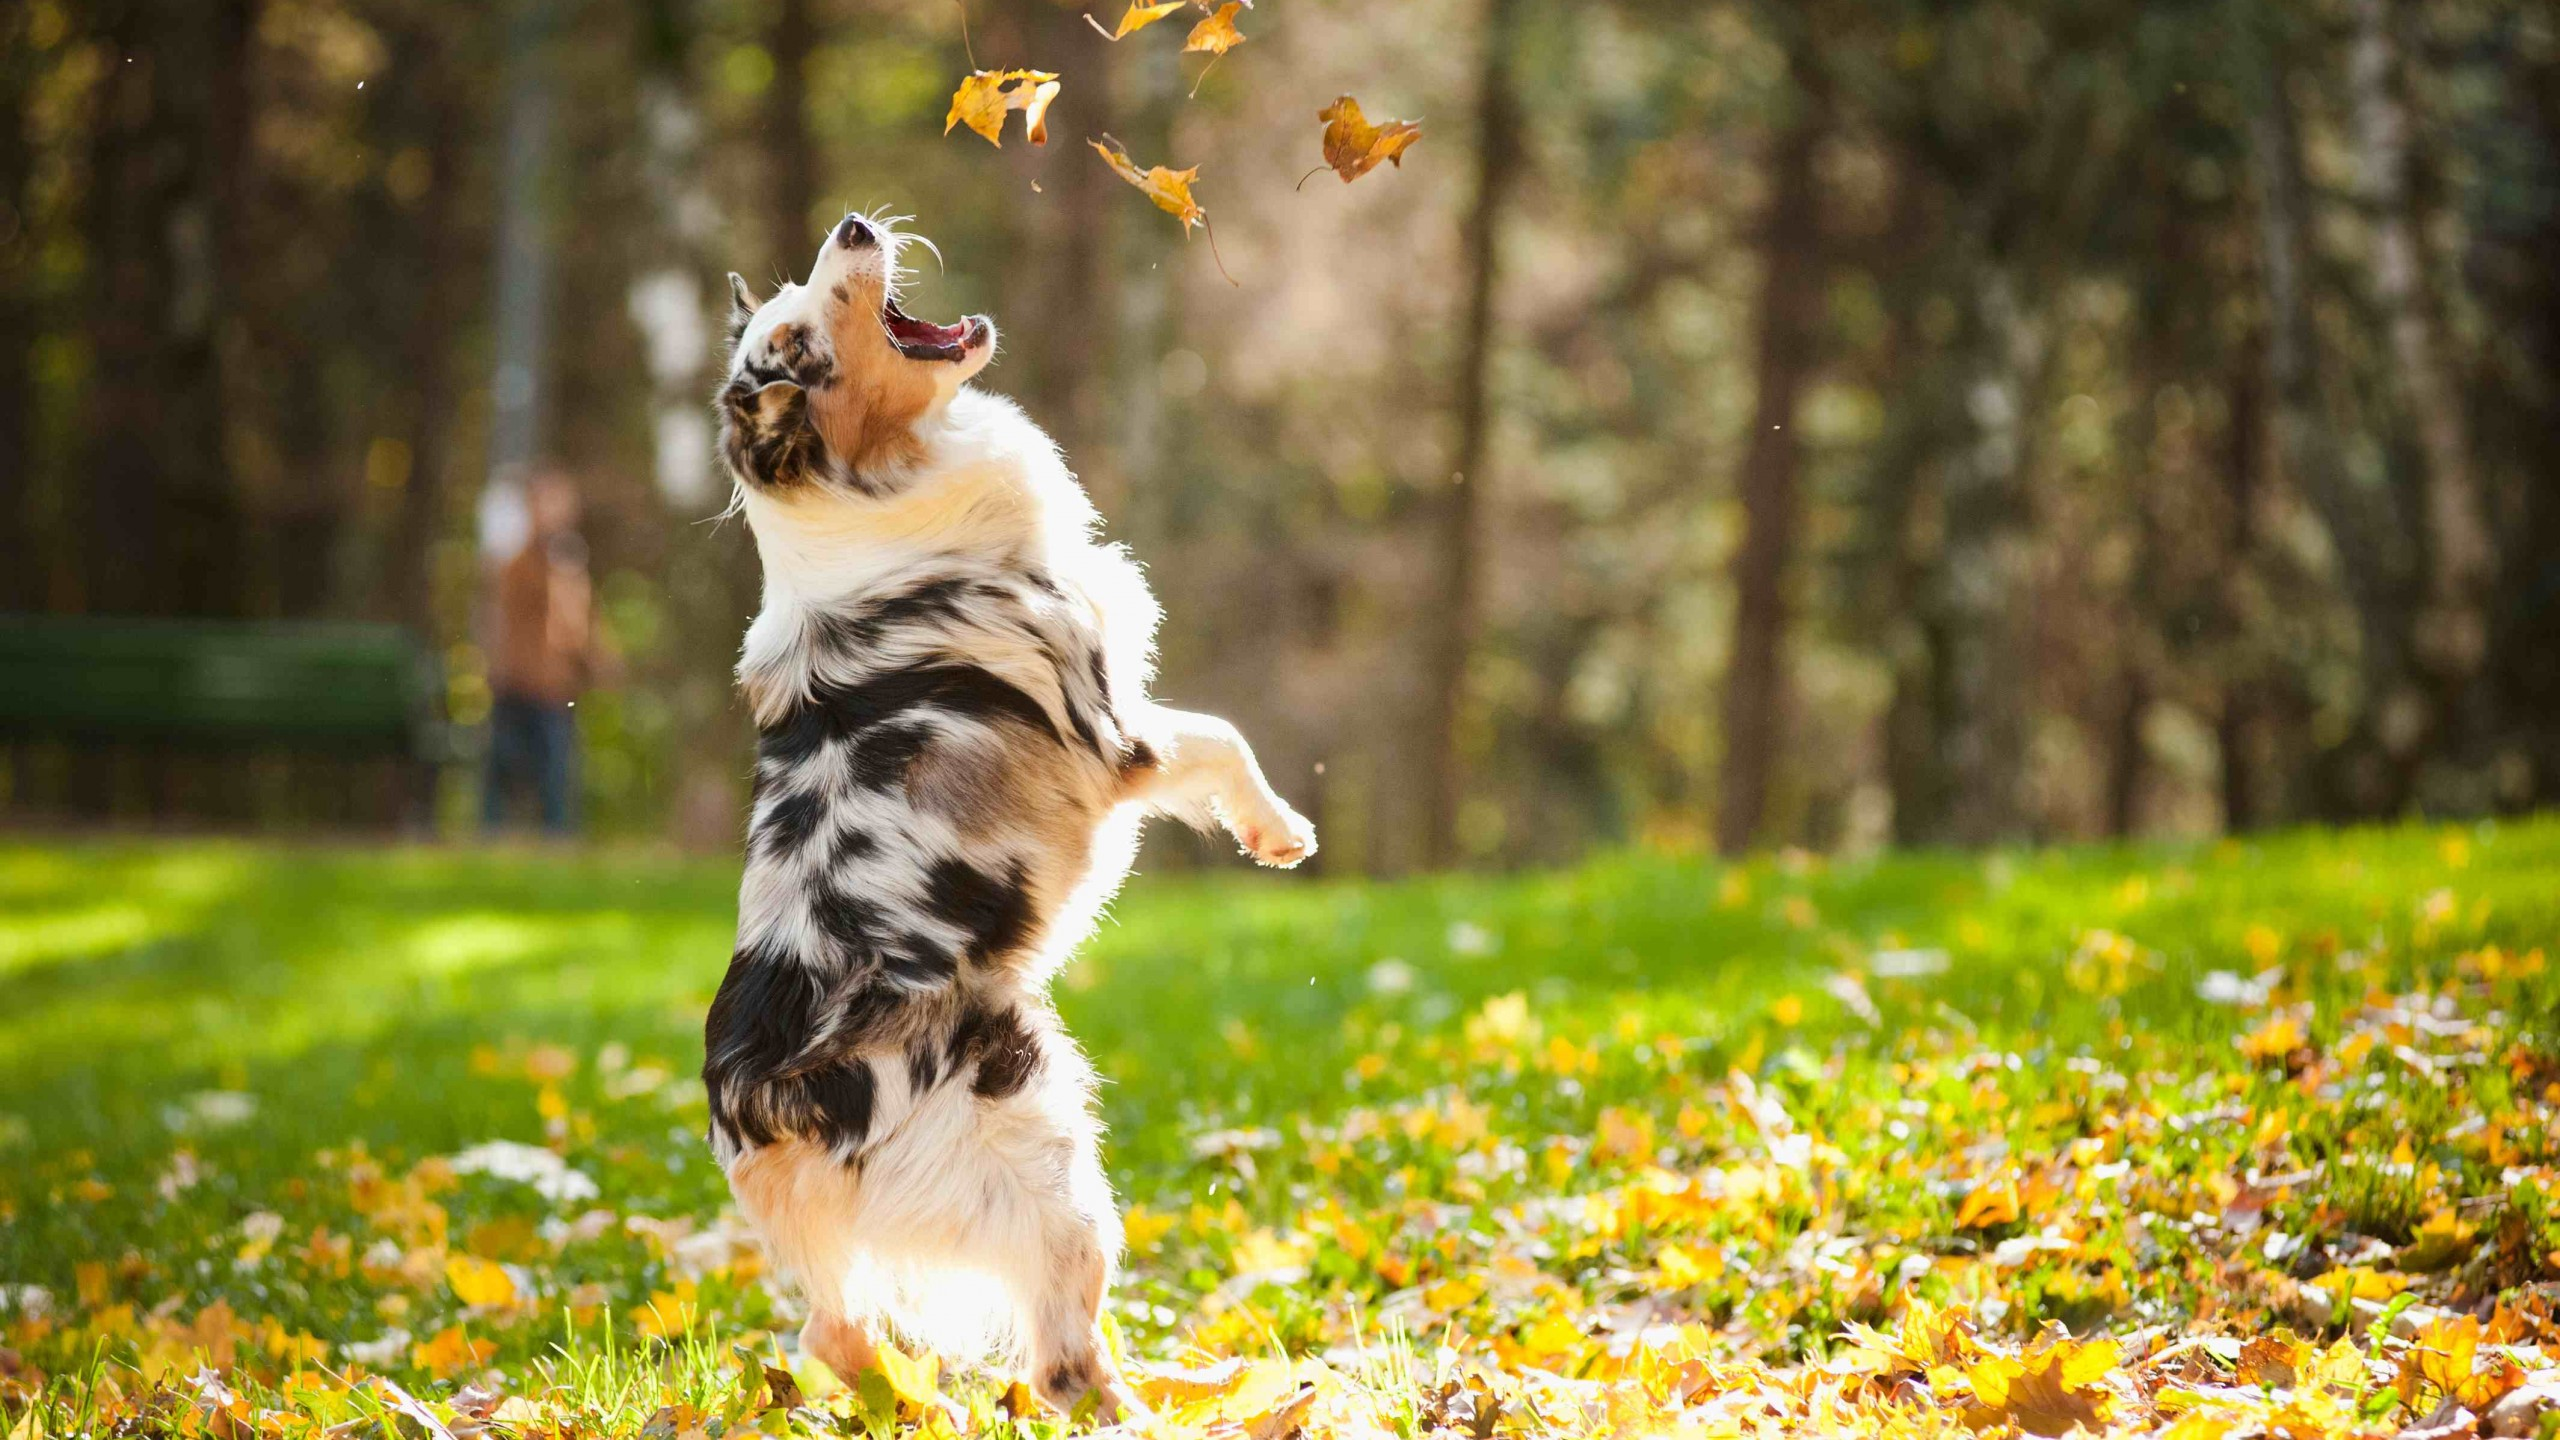 wallpaper dog  puppy  jumping  leaves  autumn  pet  green grass  park  animals  1061